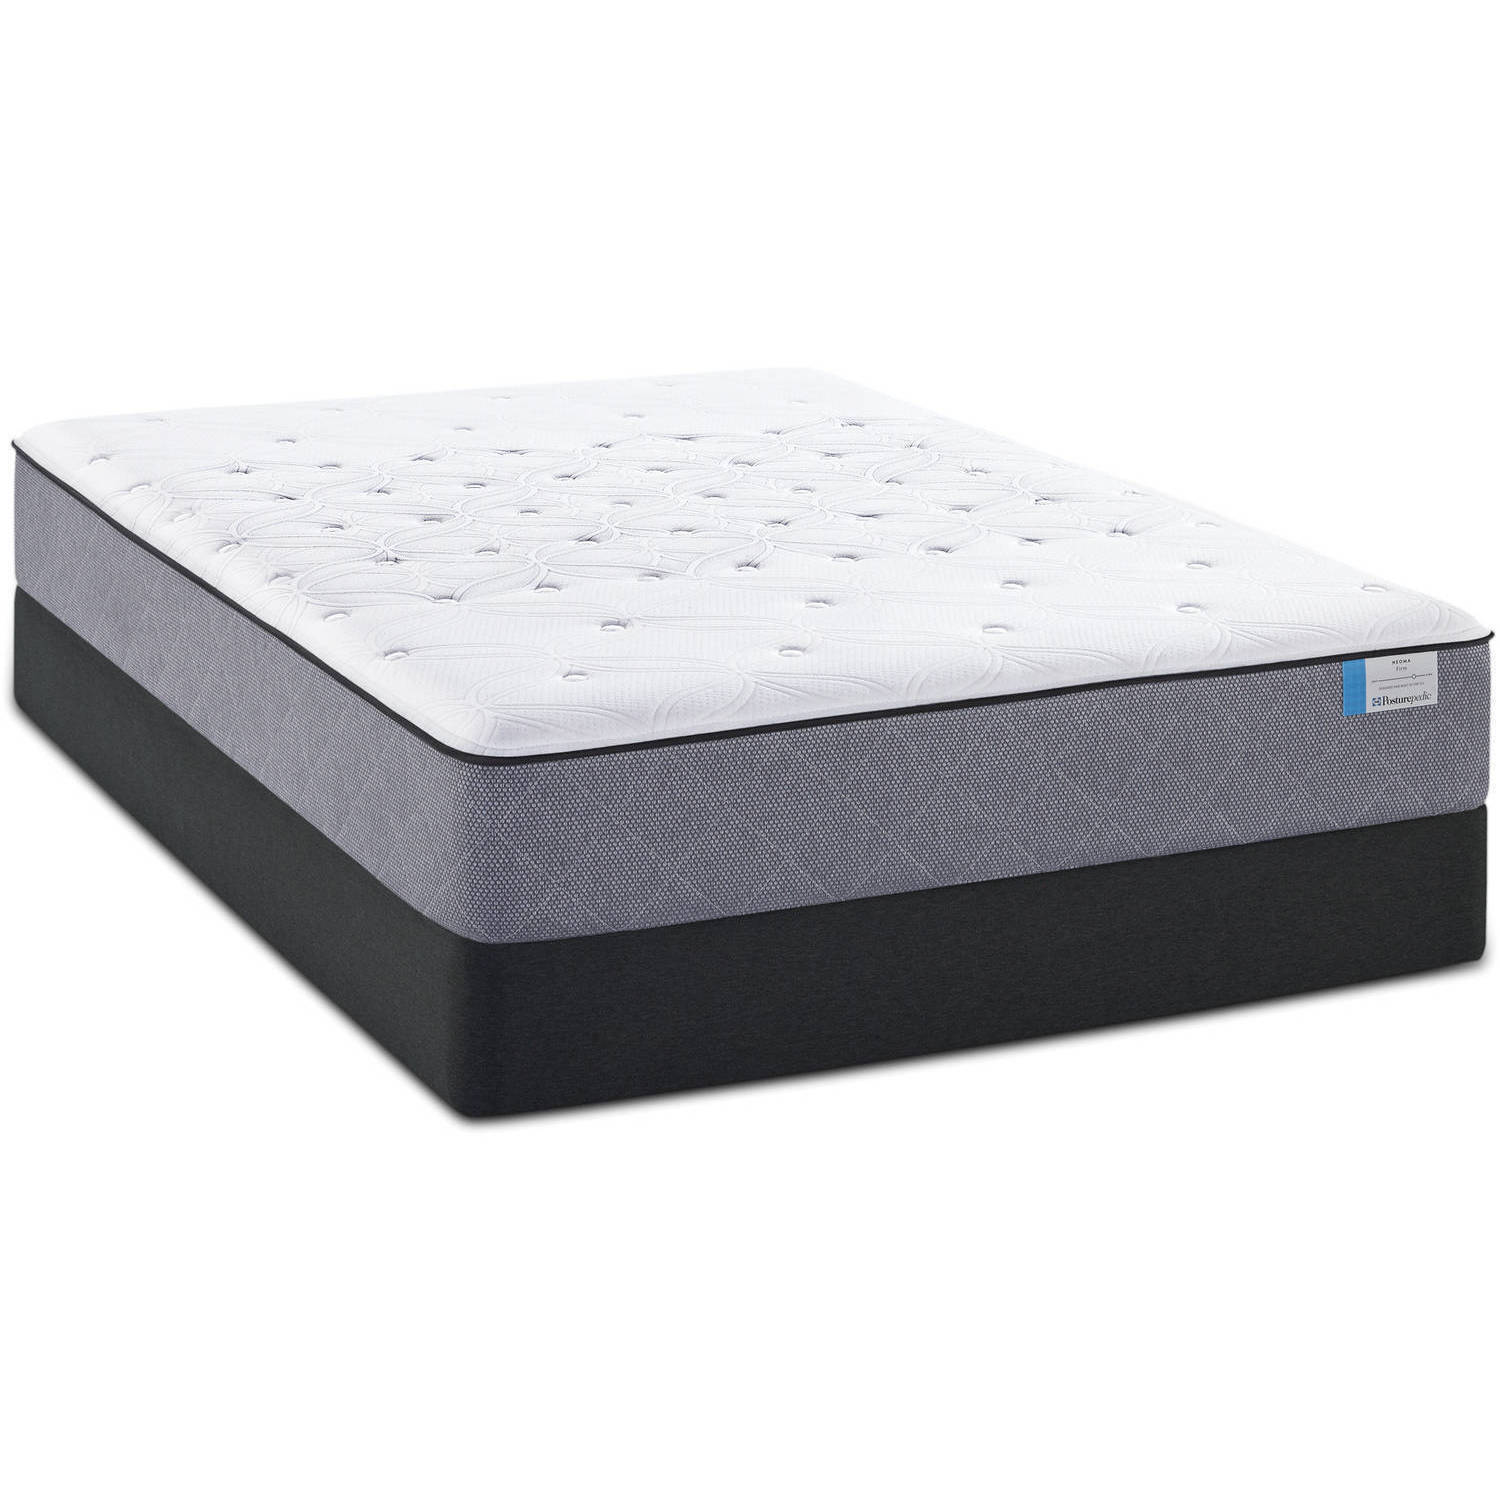 Sealy Posturepedic Chalone Firm Mattress Walmart